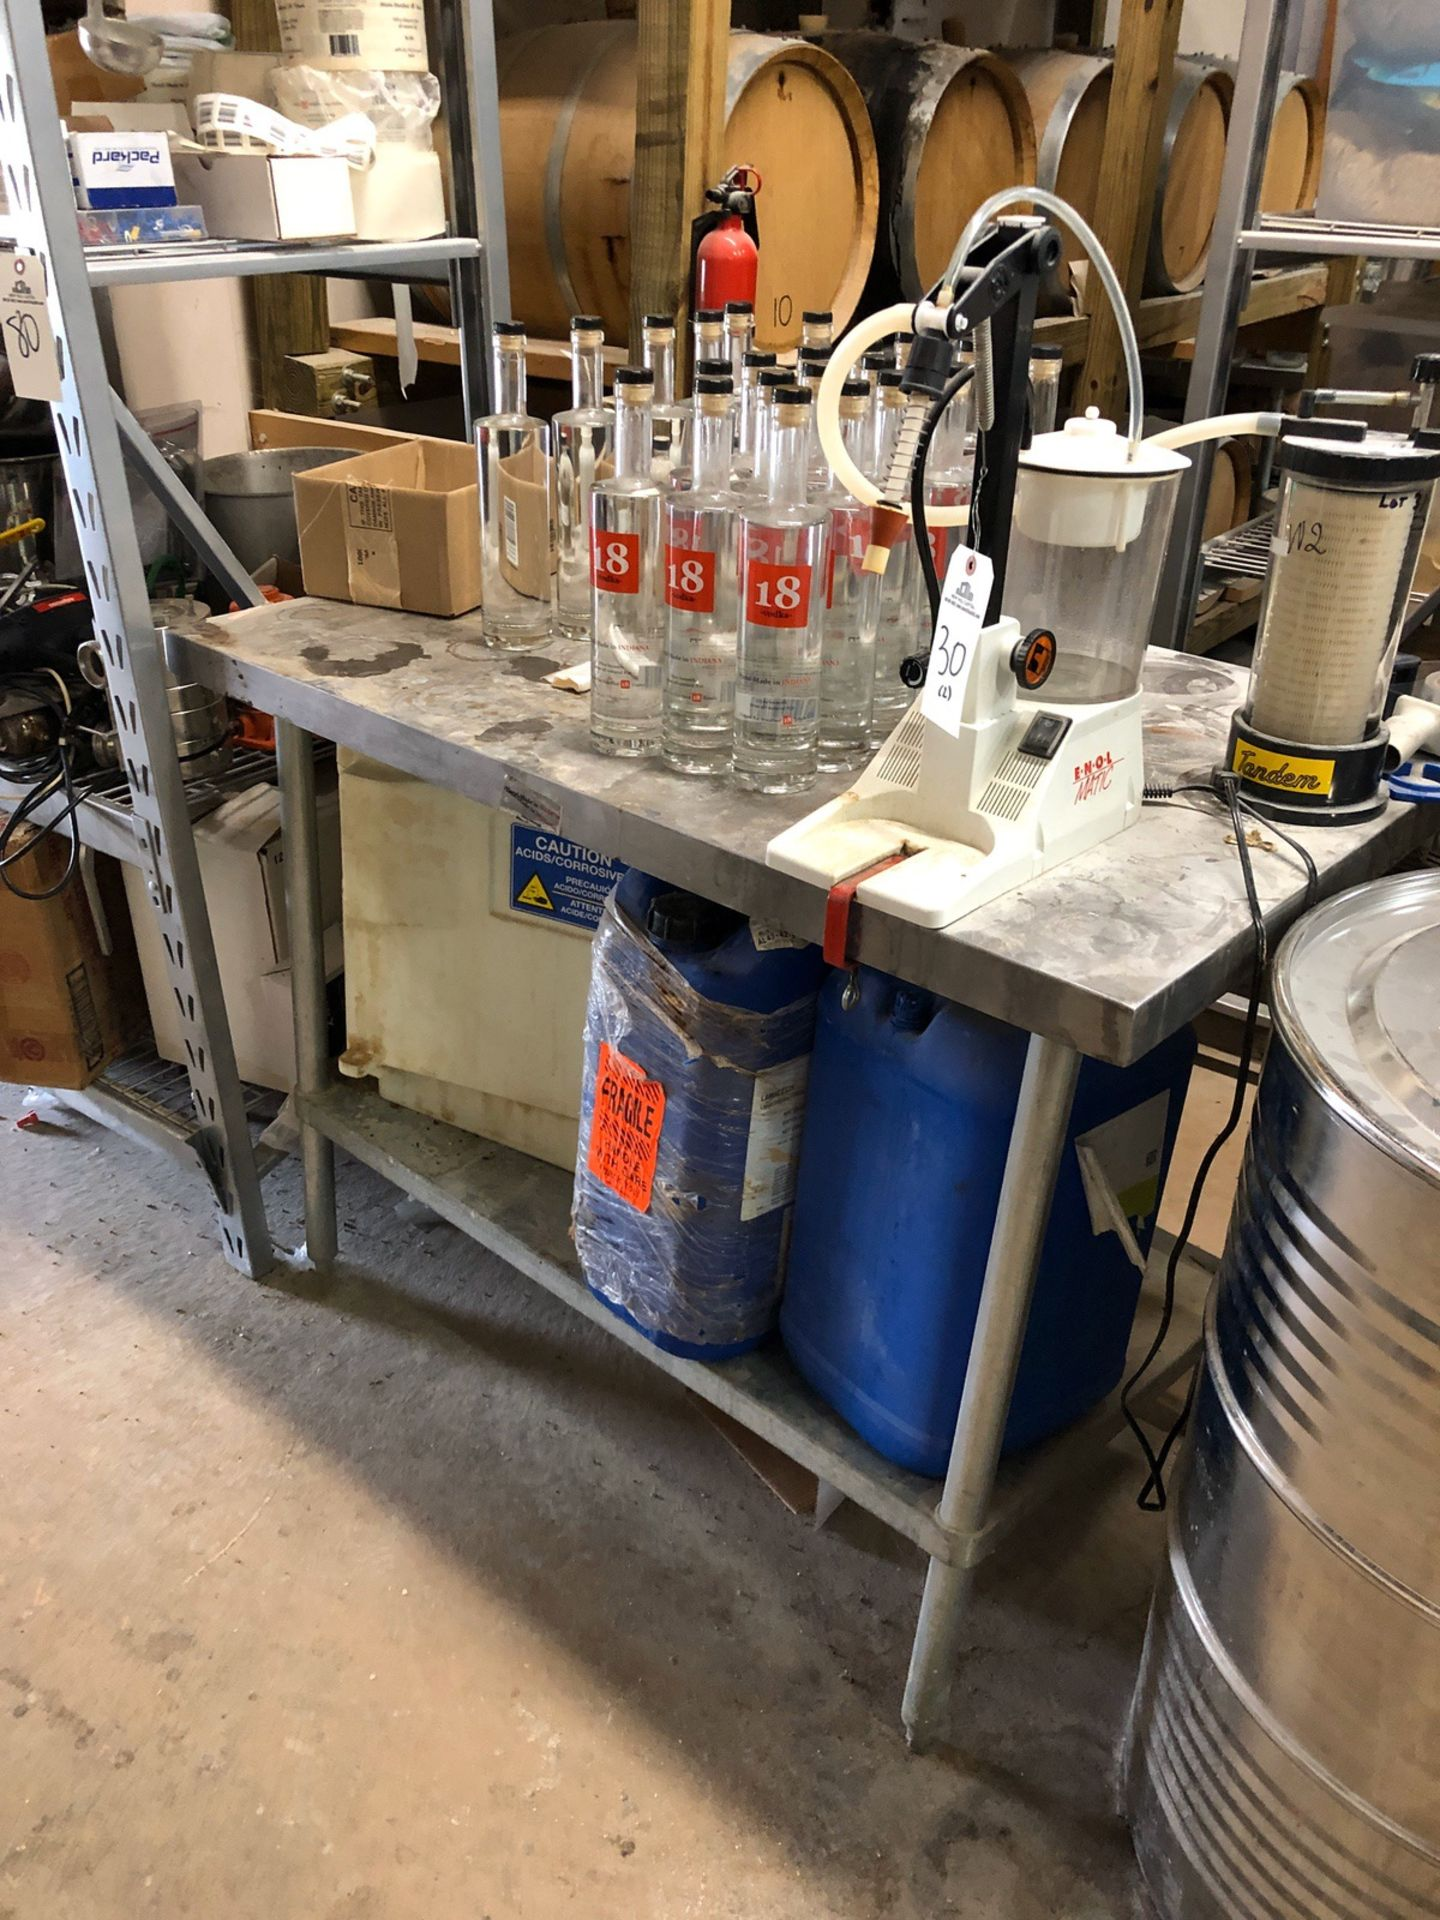 Lot 81 - (5) Stainless Steel Tables (No Contents) | Rig Fee: $50